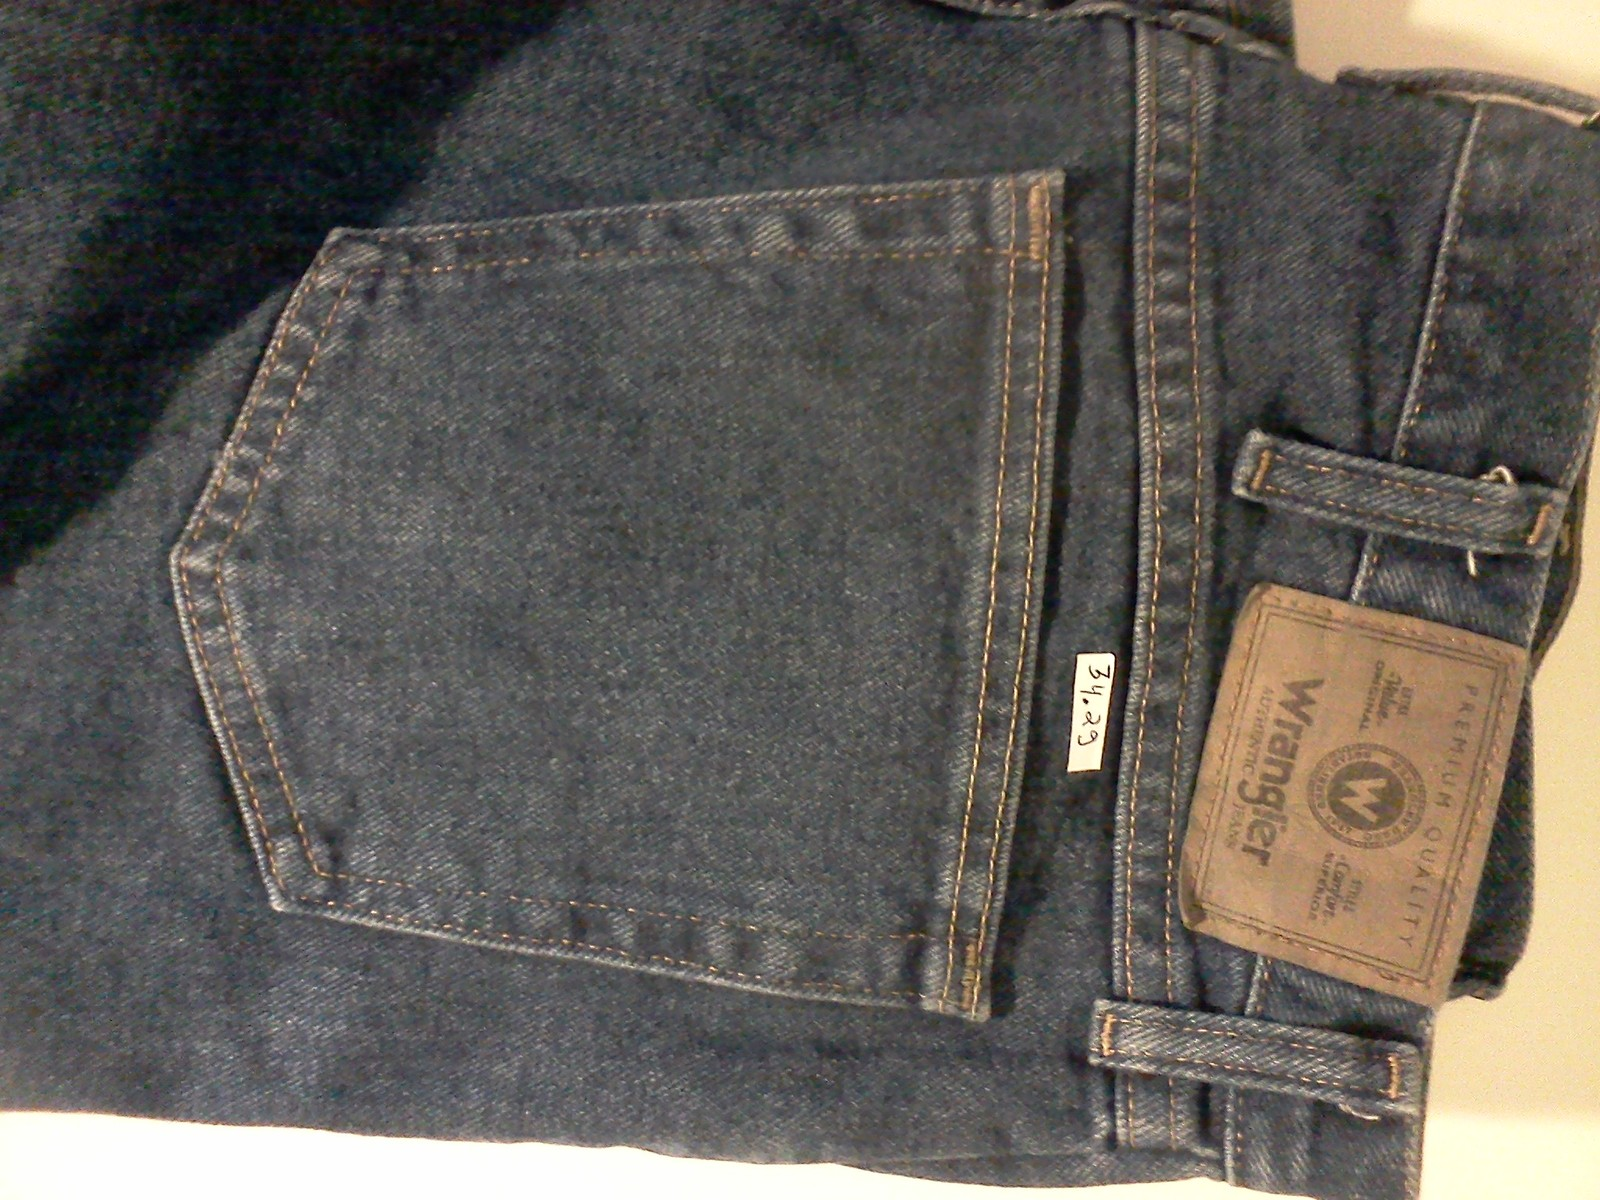 Primary image for Wrangler 34 x 29 jeans blue mdx